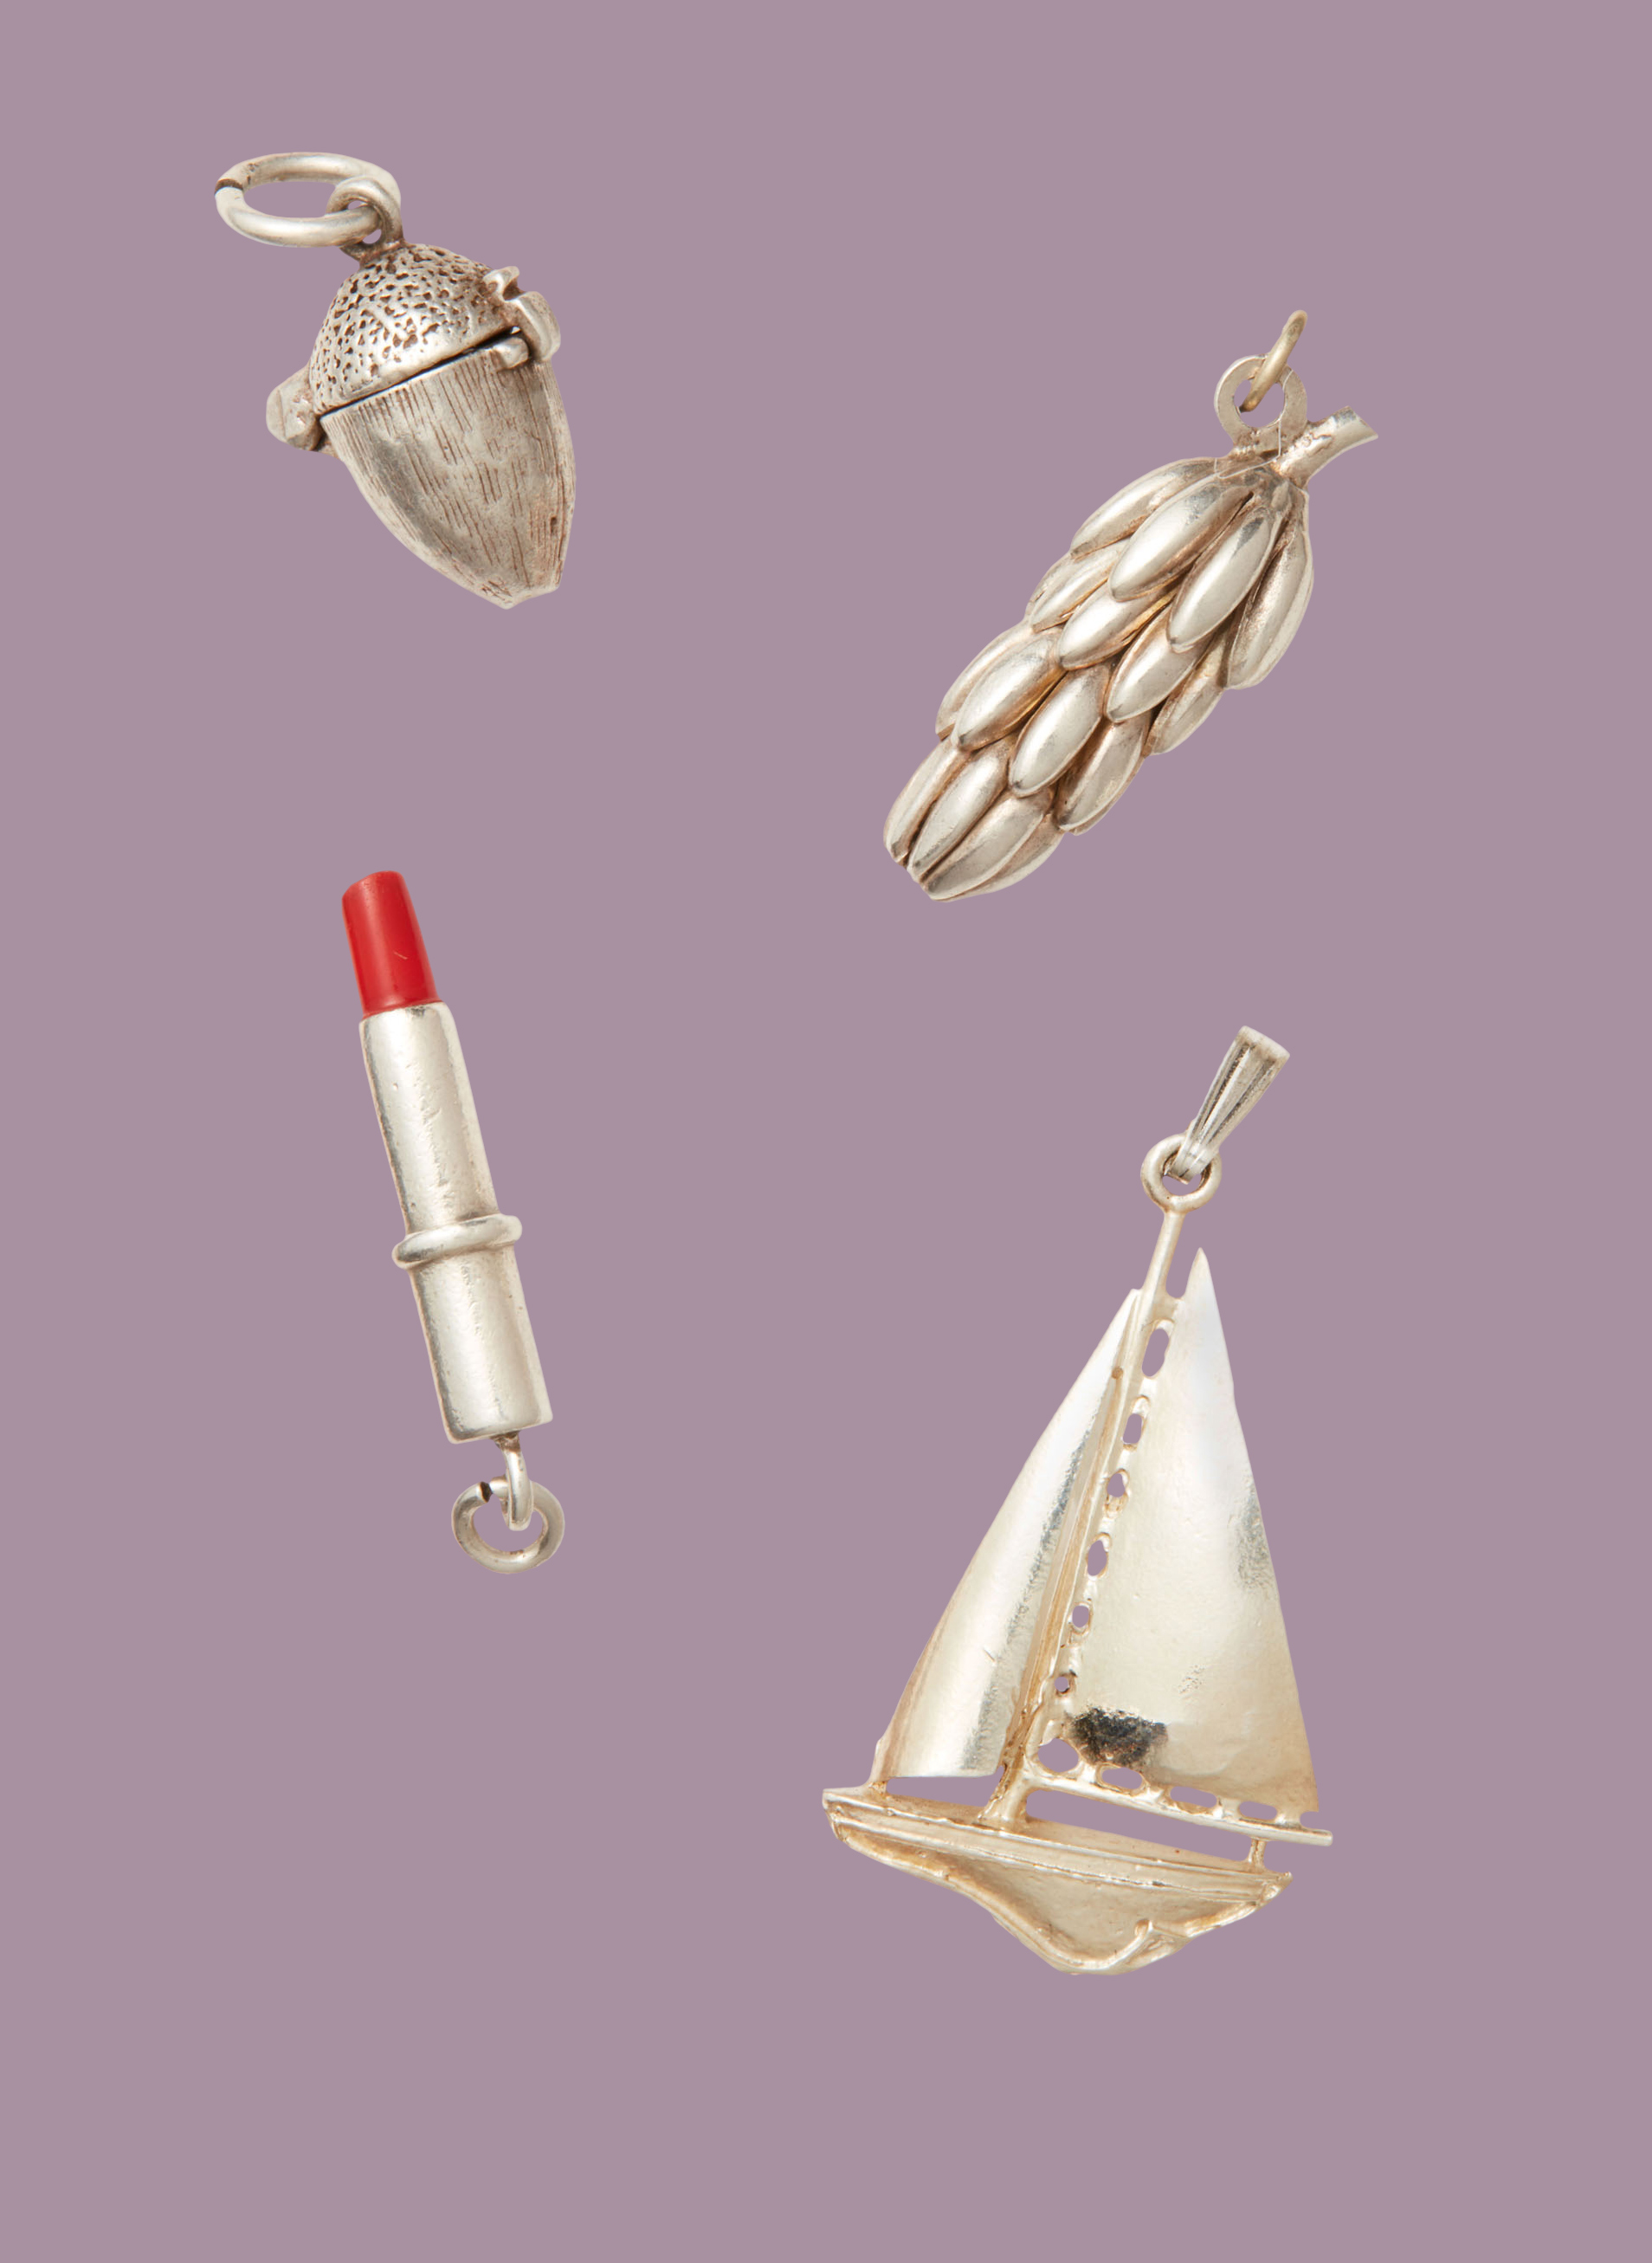 four vintage charms acorn banana bunch lipstick sailboat